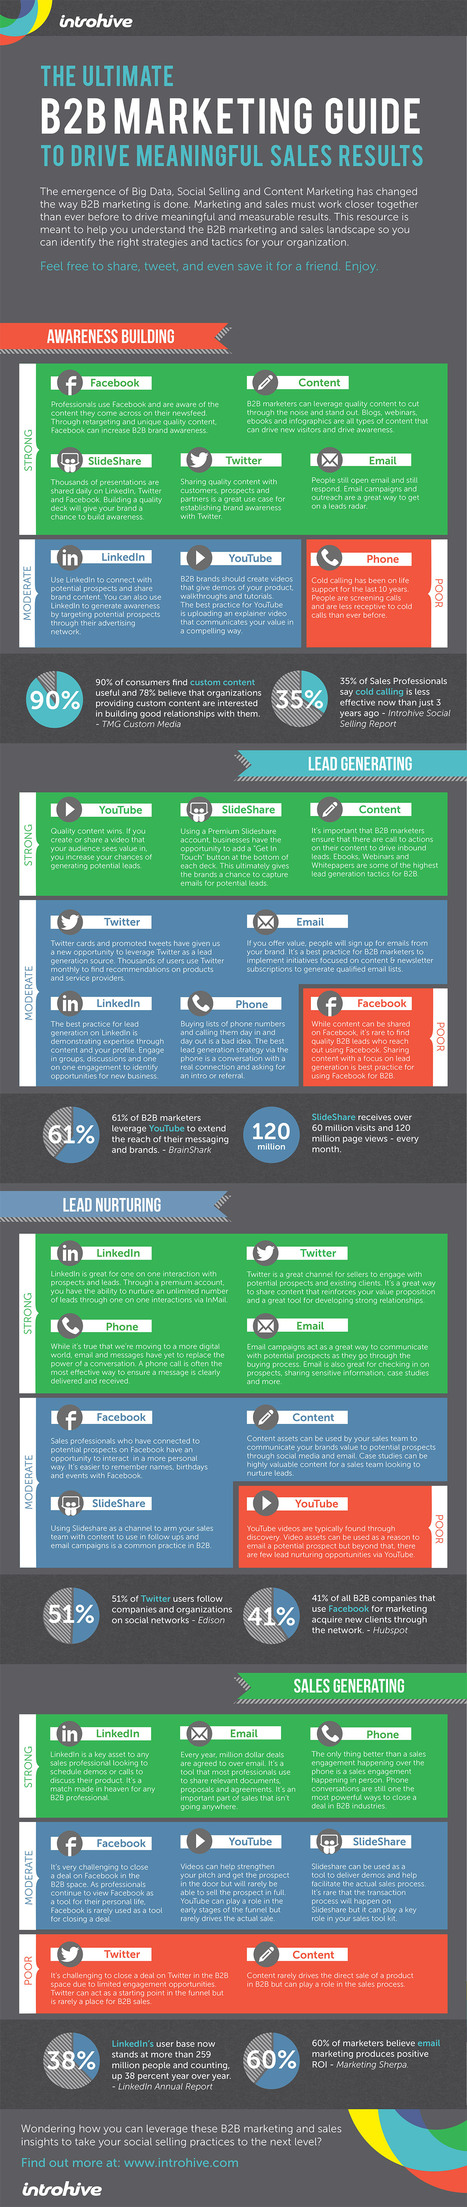 The ultimate B2B Marketing Guide [Infographic] | Un noeud dans le mouchoir des médias sociaux | Scoop.it